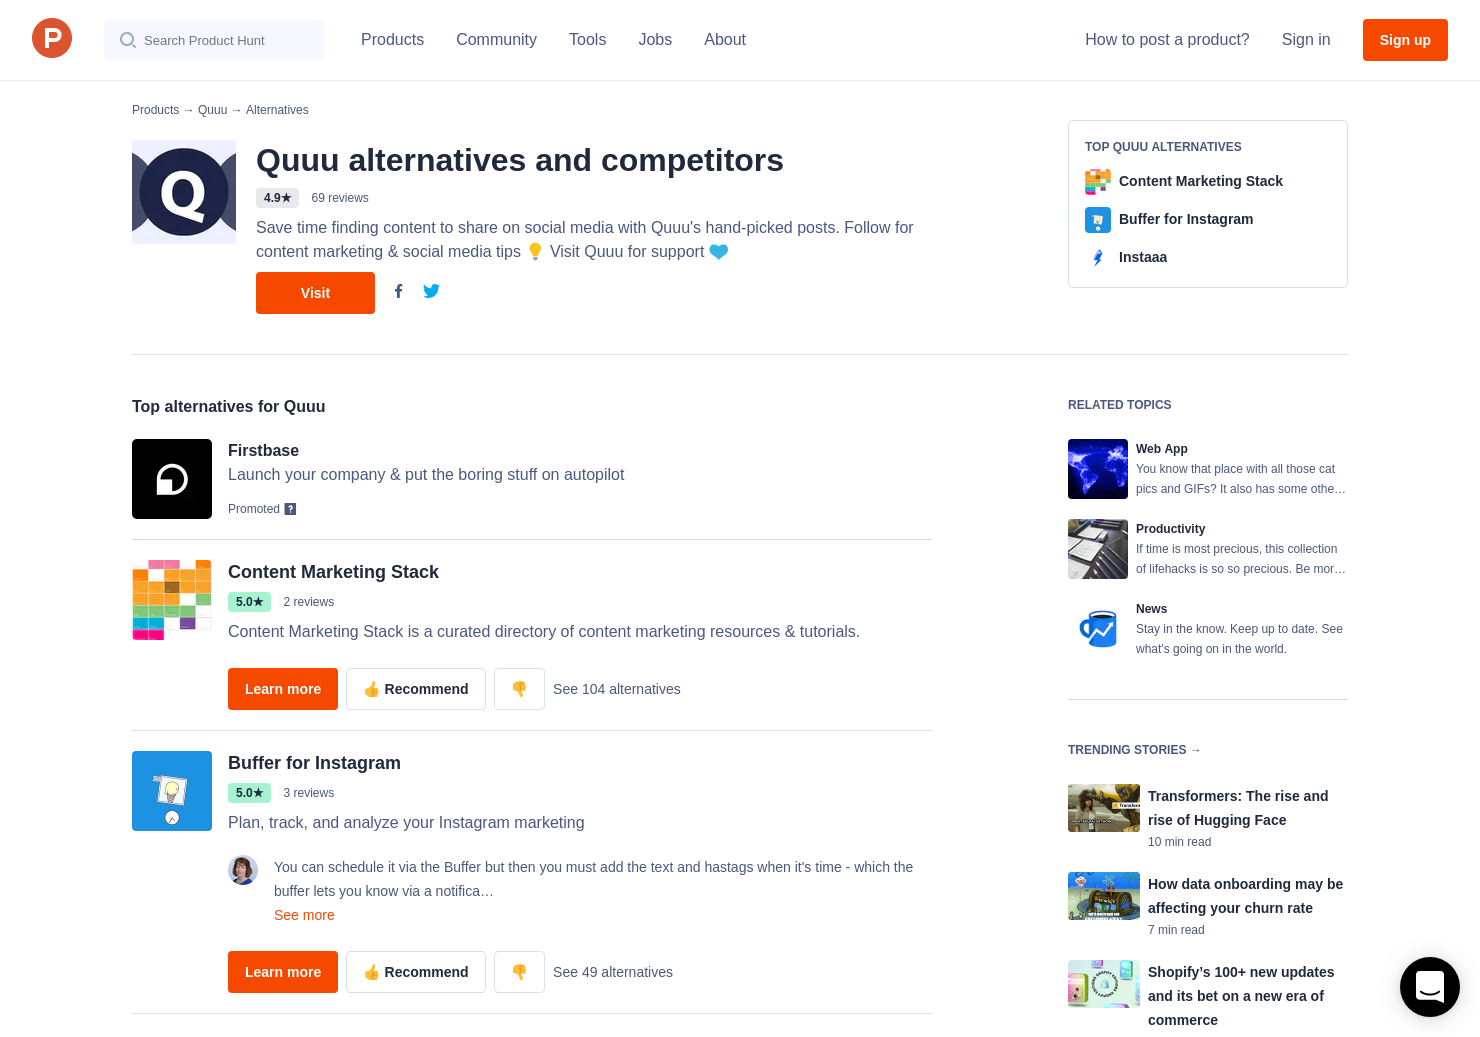 5 Alternatives to Quuu 4 0 | Product Hunt